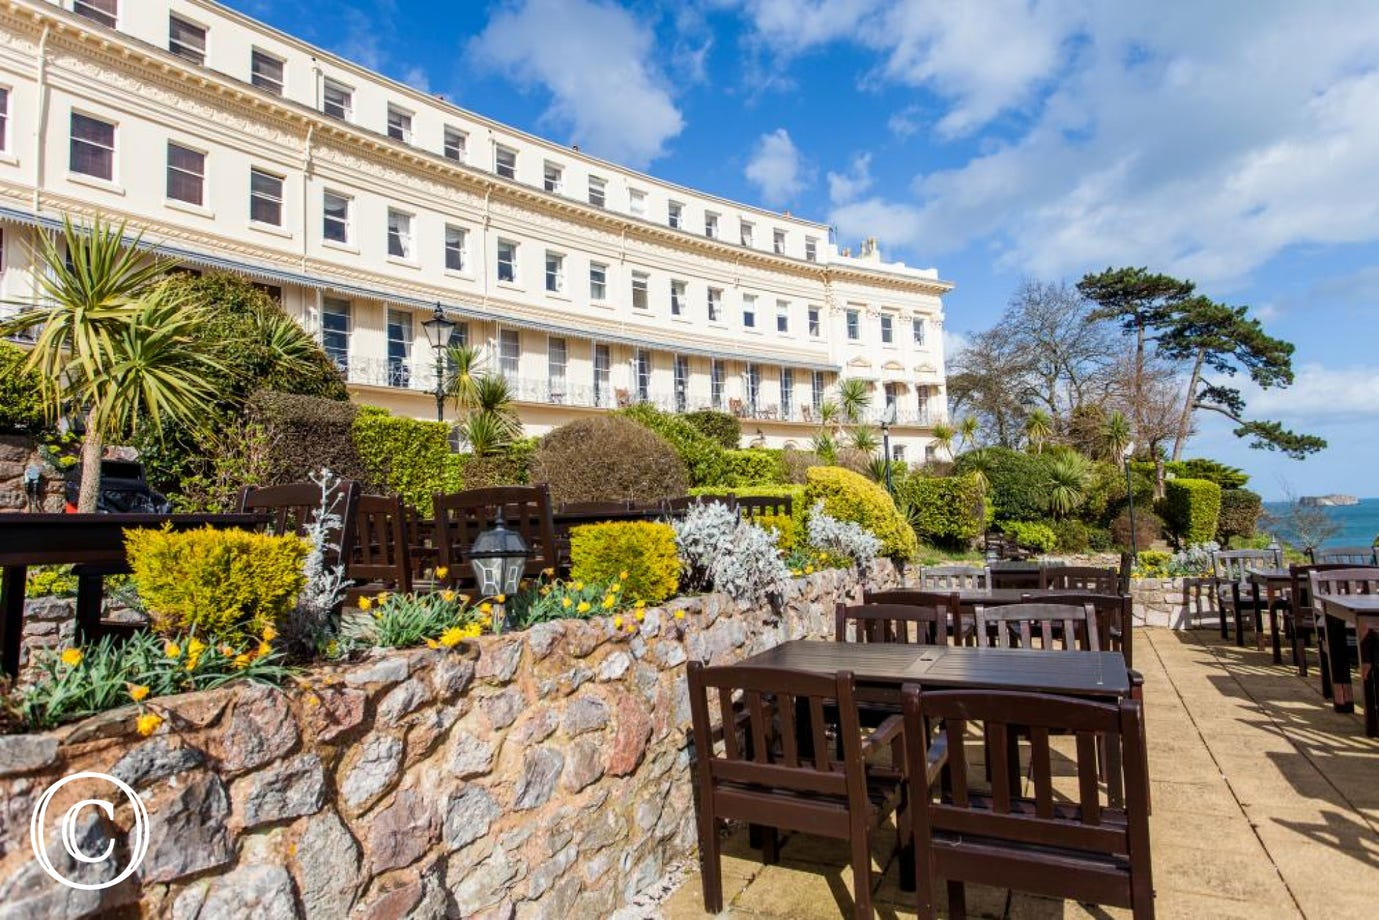 The Iconic Hesketh Crescent with Al Fresco Dining Area